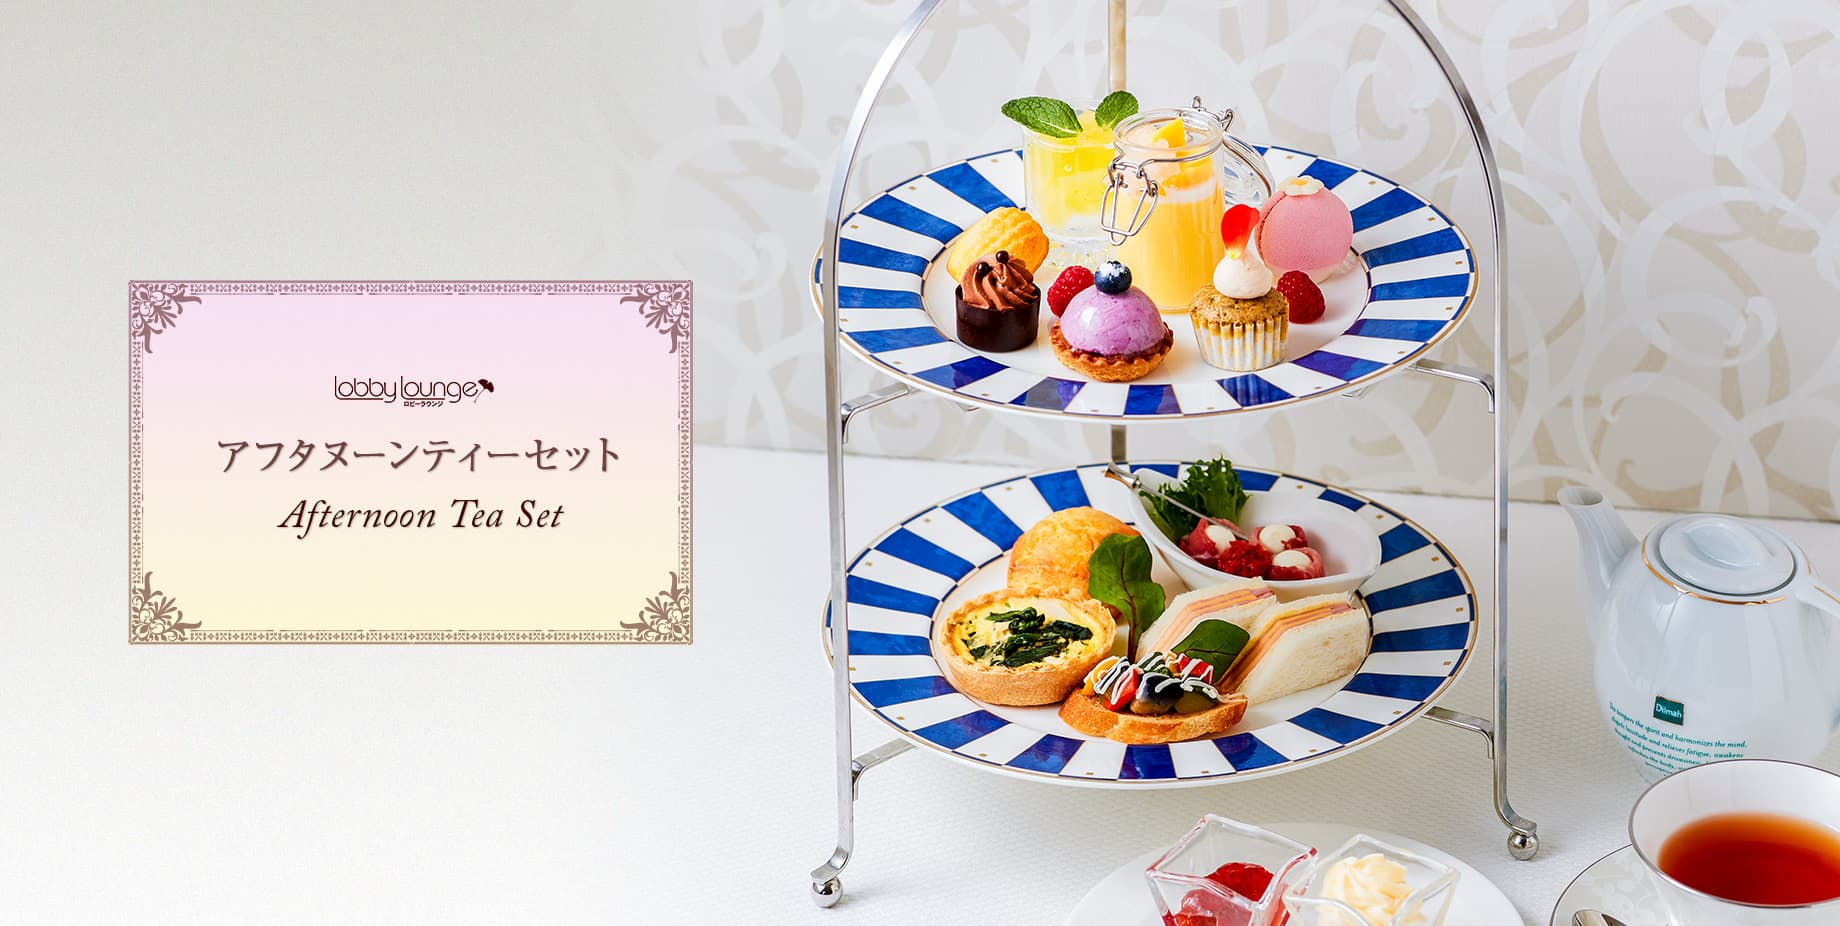 https://www.hno.co.jp/restaurant/fountain/img/main/p-afternoon-teaset-MT-L.jpg